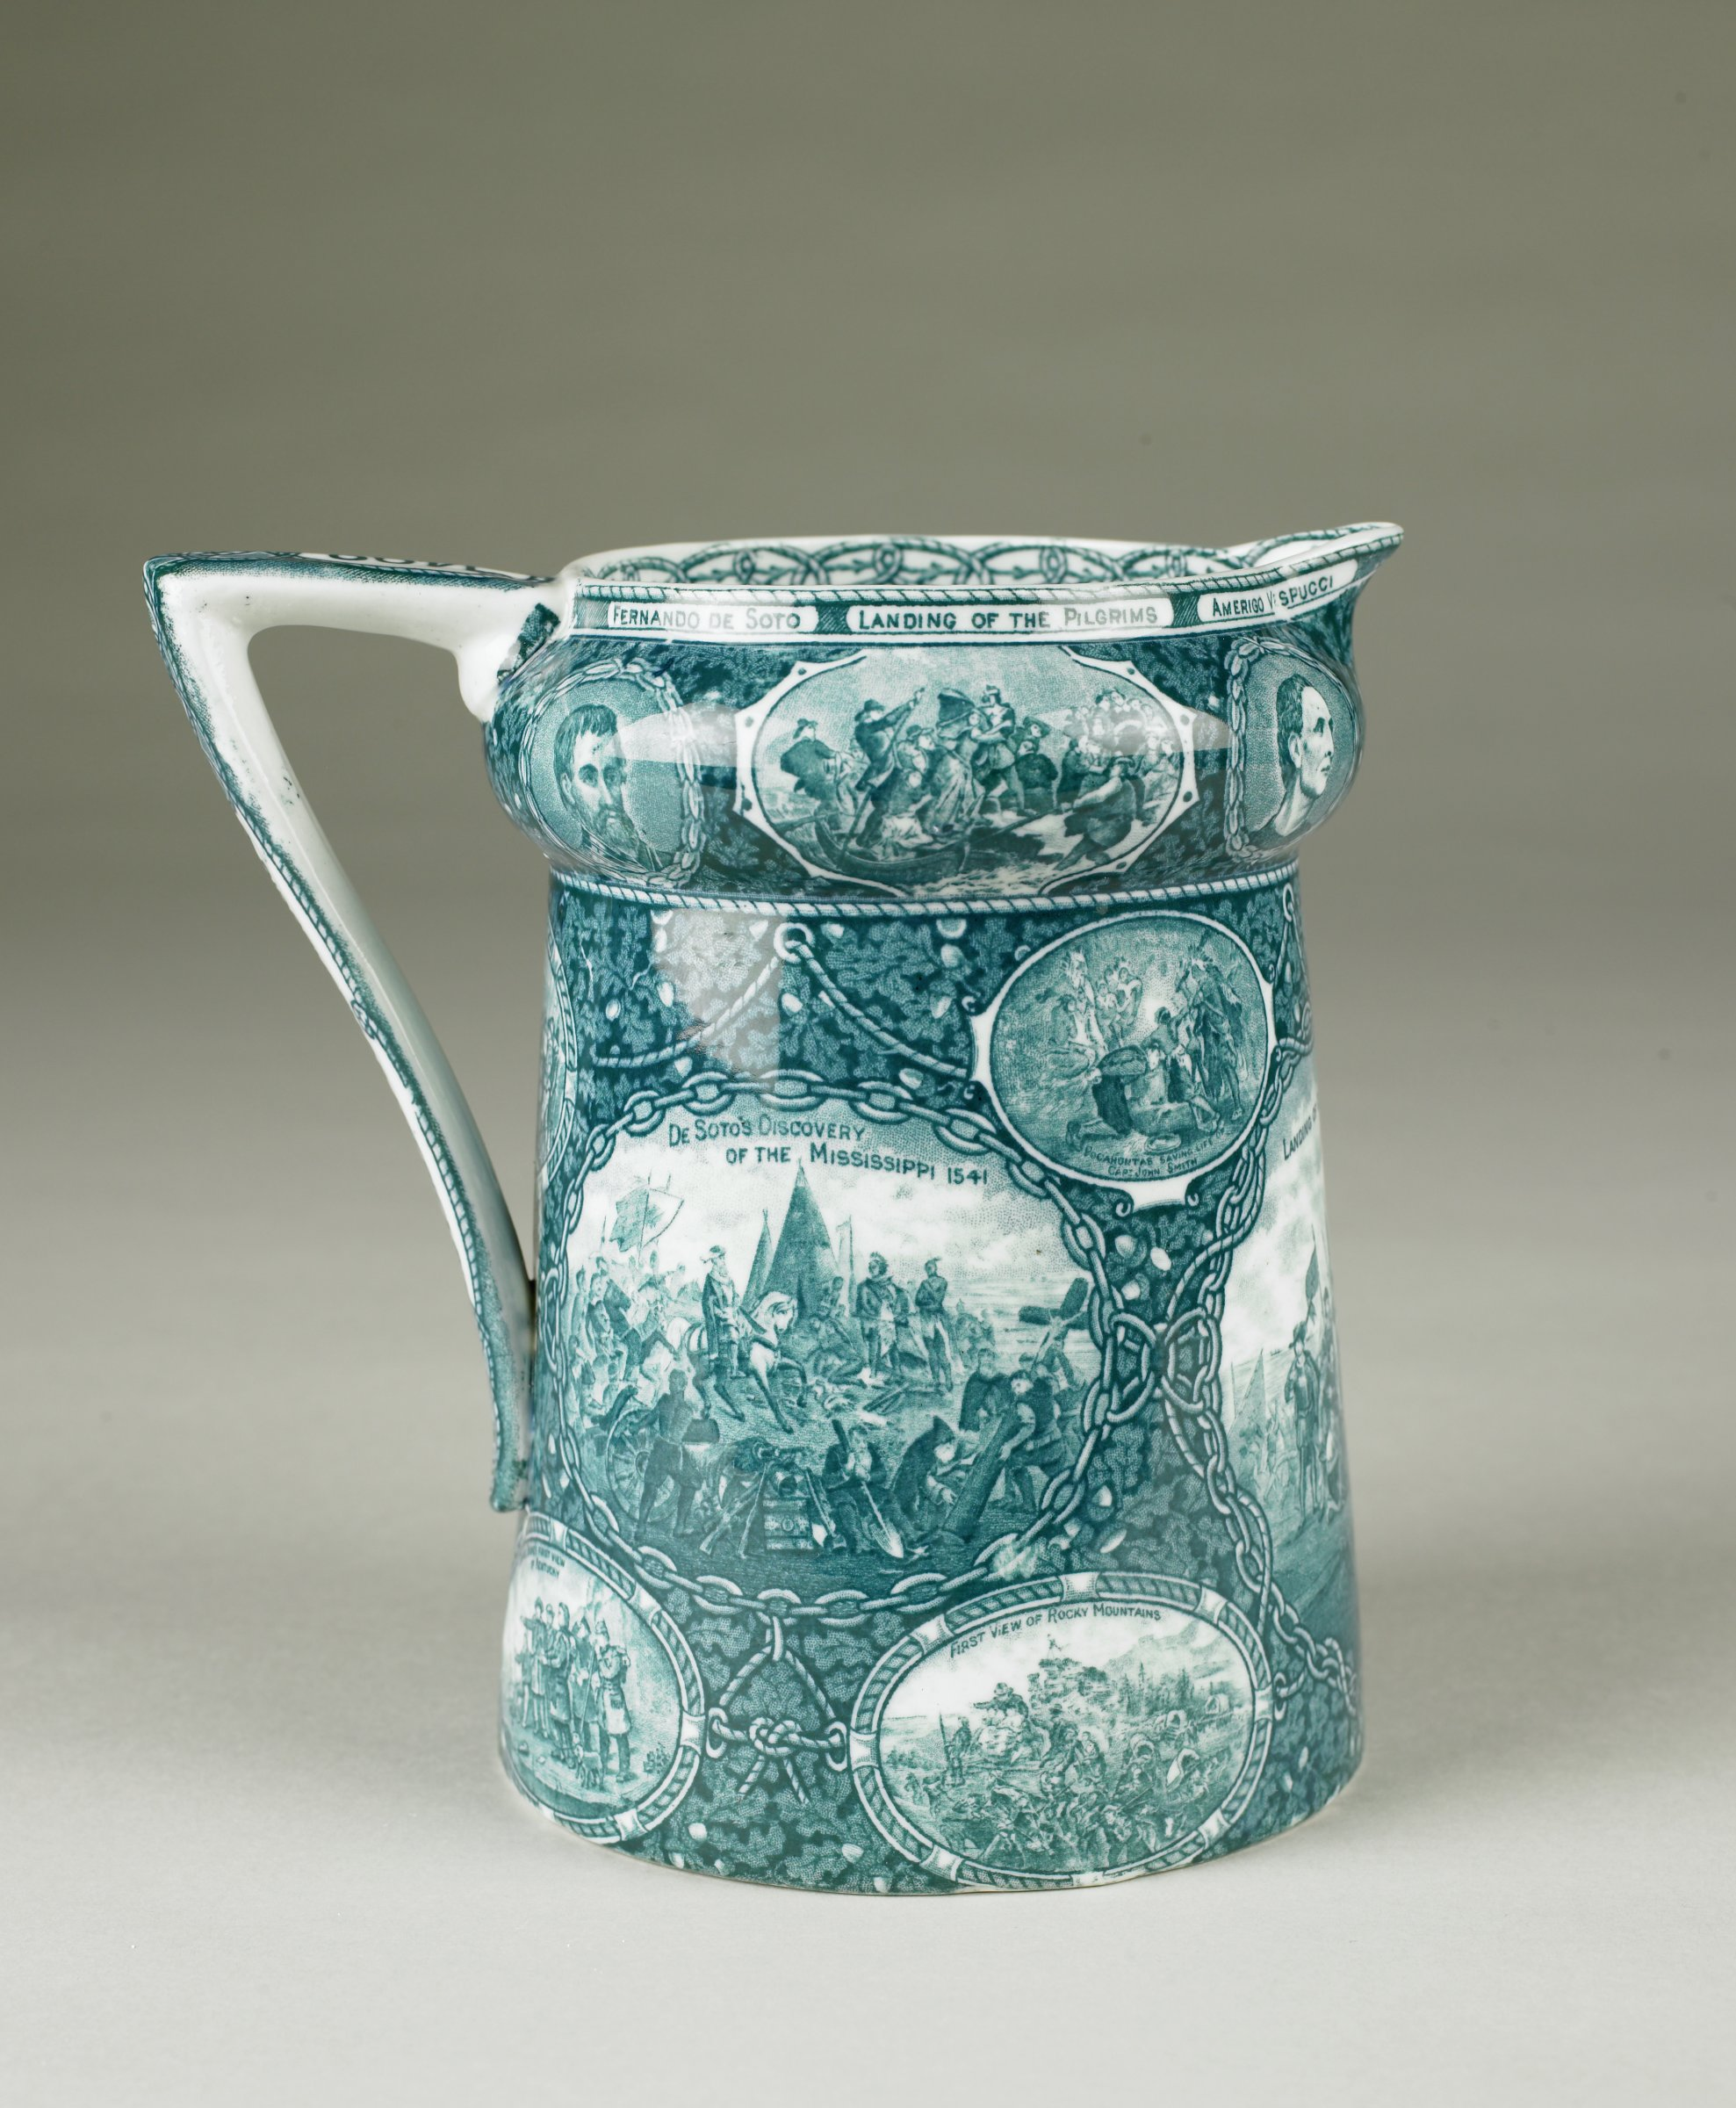 """Pitcher commemorating the """"Discovery of America"""" of transfer-printed, lead-glazed earthenware in shades of monochrome blue-green, of tapering form with a bulbous neck, the shaped handle inscribed """"1492"""" and """"Discovery of America,"""" the body decorated with oval reserves depicting many firsts in American history, including three large oval reserves enclosed by chains depicting """"William Penn's Treaty with the Indians 1683""""; """"Landing of Columbus""""; and """"De Soto's Discovery of the Mississippi 1541,"""" below these are four smaller reserves enclosed by ropes depicting """"Landing of Roger Williams""""; """"Columbus before Ferdinand and Isabella""""; """"Daniel Boone's first view of Kentucky""""; and """"First view of the Rocky Mountains,"""" and above the large reserves are two small reserves with scrolled borders depicting """"Pocahontas saving the life of Capt. John Smith"""" and """"Landing at Jamestown,"""" under the handle is one reserve enclosed by rope depicting """"Pilgrims receiving Massasoit,"""" on the bulbous neck are additional reserves with the portrait of """"Du Quesne""""; """"Fremont raising the flag""""; """"Christopher Columbus""""; """"Fernando de Soto""""; """"Landing of the Pilgrims""""; and """"Amerigo Vespucci,"""" all against an oak leaf ground with ropes, anchors and a ship's porthole, with small spout, the inside lip of the pitcher with a pattern of entwined ropes."""